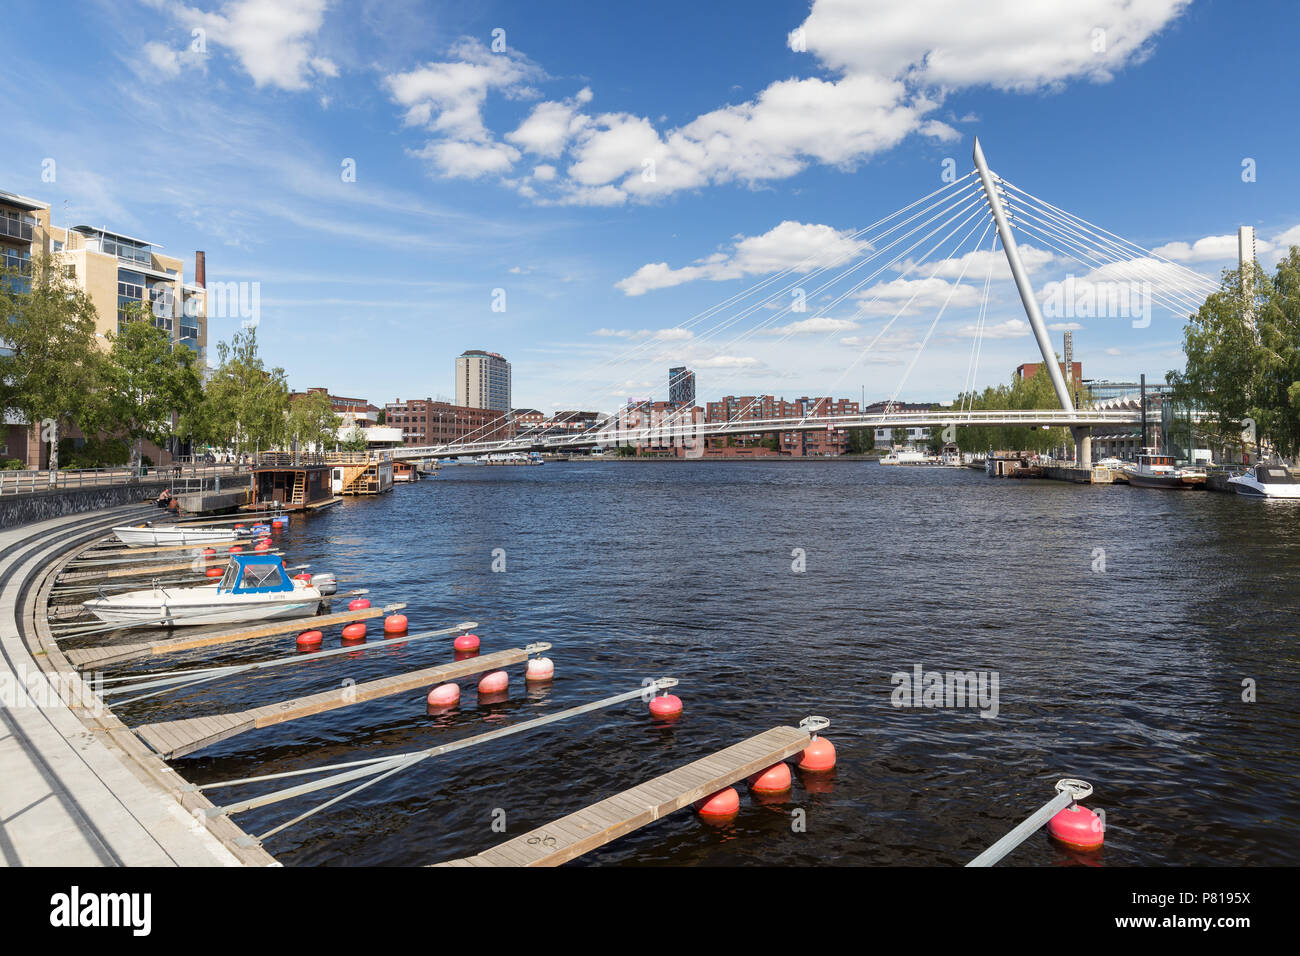 Buildings, bridge and boats at the Ratinan Suvanto (a bay or stream pool between Tammerkoski rapids and Lake Pyhäjärvi) in downtown Tampere, Finland. - Stock Image